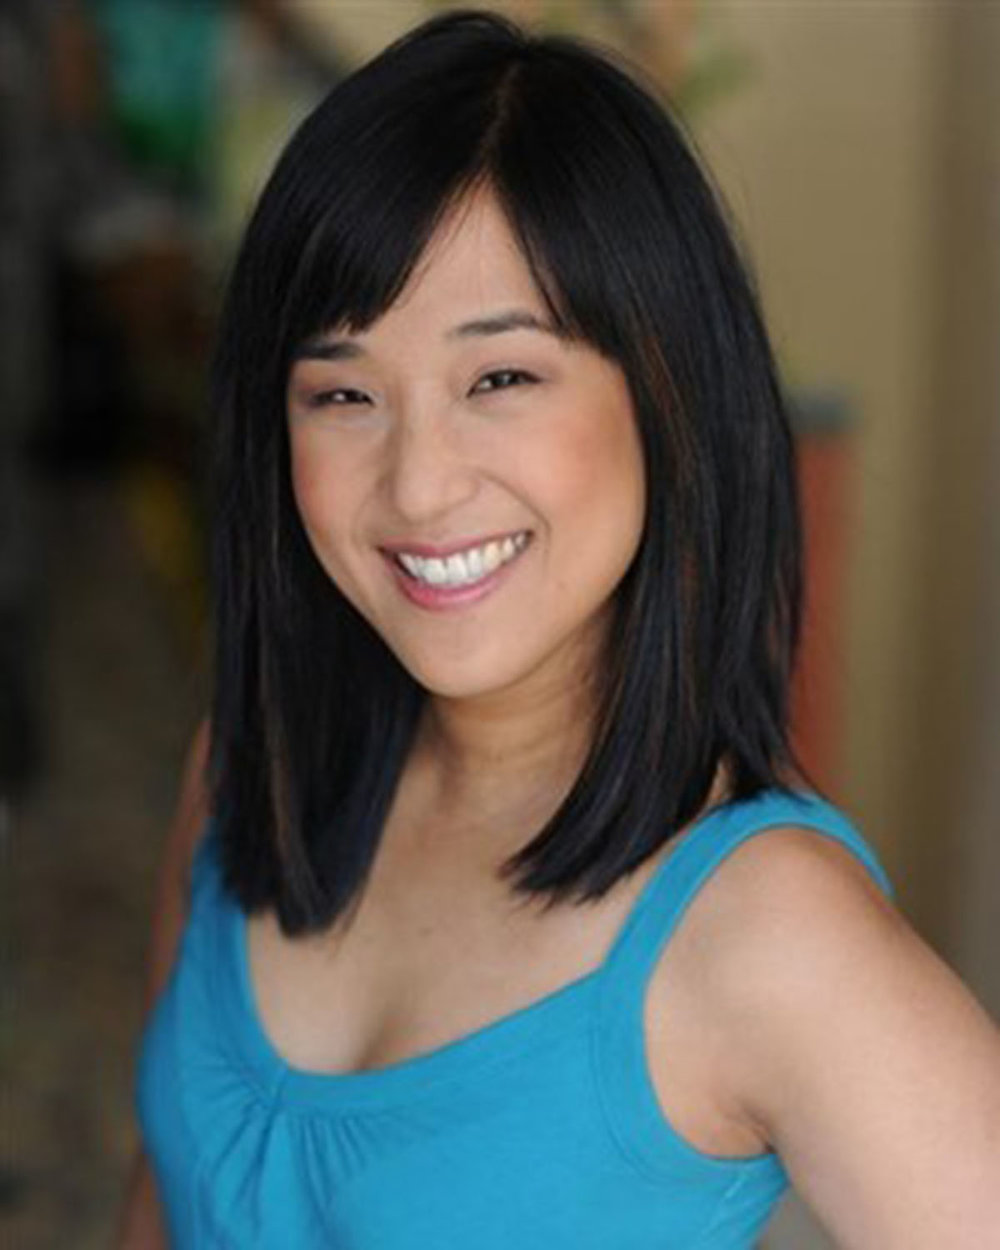 "JENNIFER TSAY as Lark - Jennifer Tsay is thrilled and excited to be part of Lust Life!  Recent theater credits include Mope (Ensemble Studio Theatre), 4000 Miles (Baltimore Center Stage), Un-Tamed: Hair Body Attitude (National Black Theatre), and The Mysteries (The Flea).  TV Credits include ""The Blacklist"", ""Bored to Death"", ""One Life to Live"" and film credits include Deborah Kampmeier's feature Split, and the indie feature When We Grow Up which shoots August 2017.  She has also been recently featured in Mac Rogers' sci-fi podcast Steal the Stars and also in a Downy China commercial with Amy Sedaris.  Education:  The Studio New York.  www.jennifertsay.com @jenjentsay"